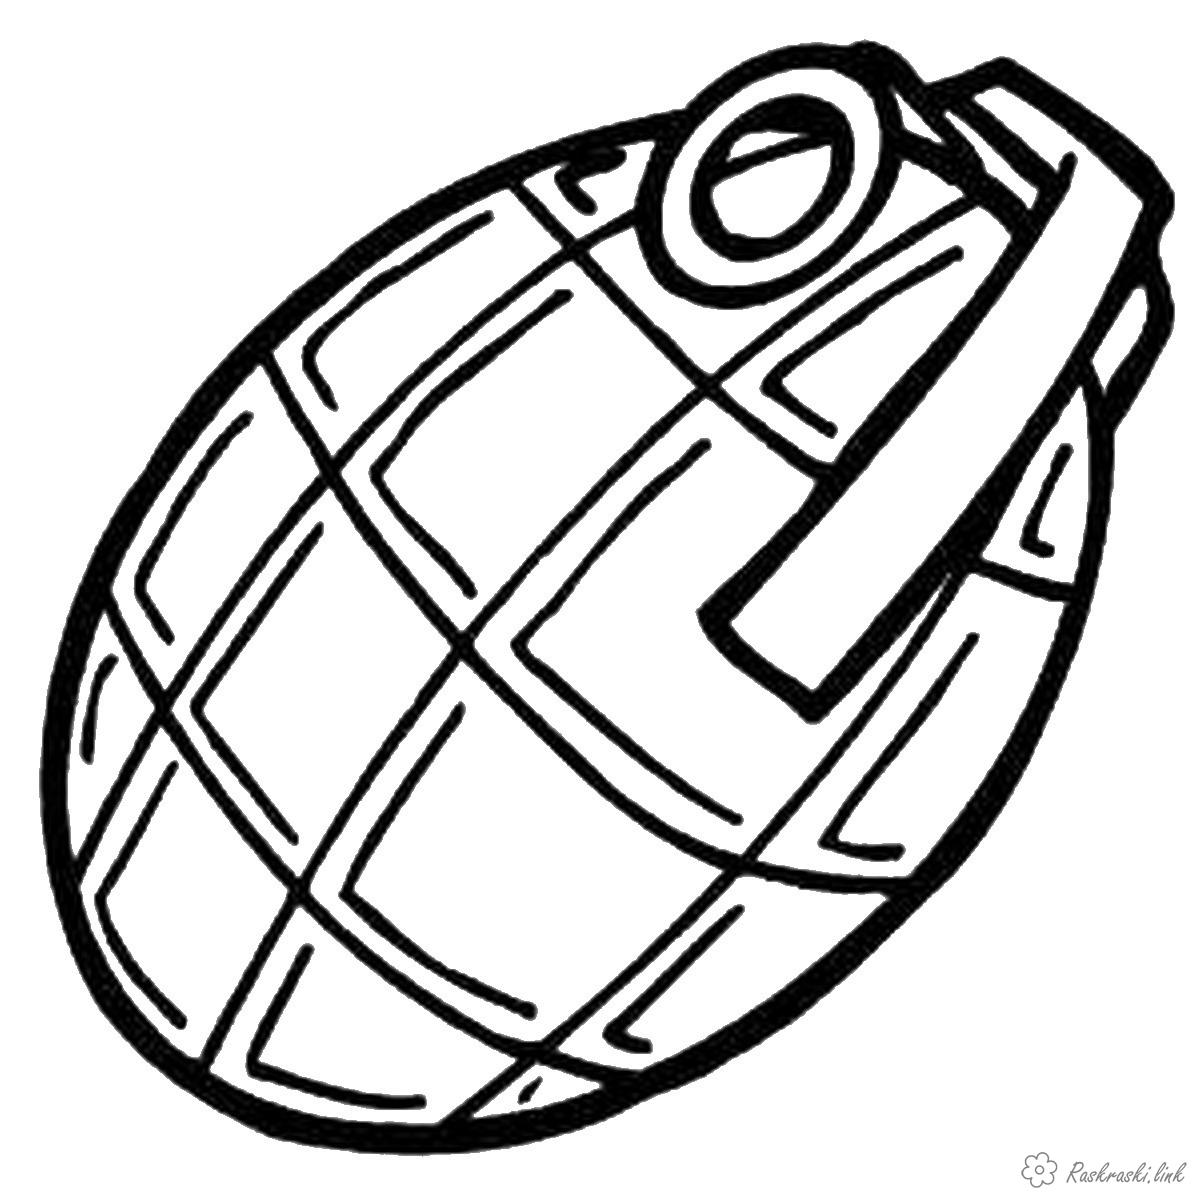 gun colouring pictures machine gun coloring pages clipart best pictures colouring gun